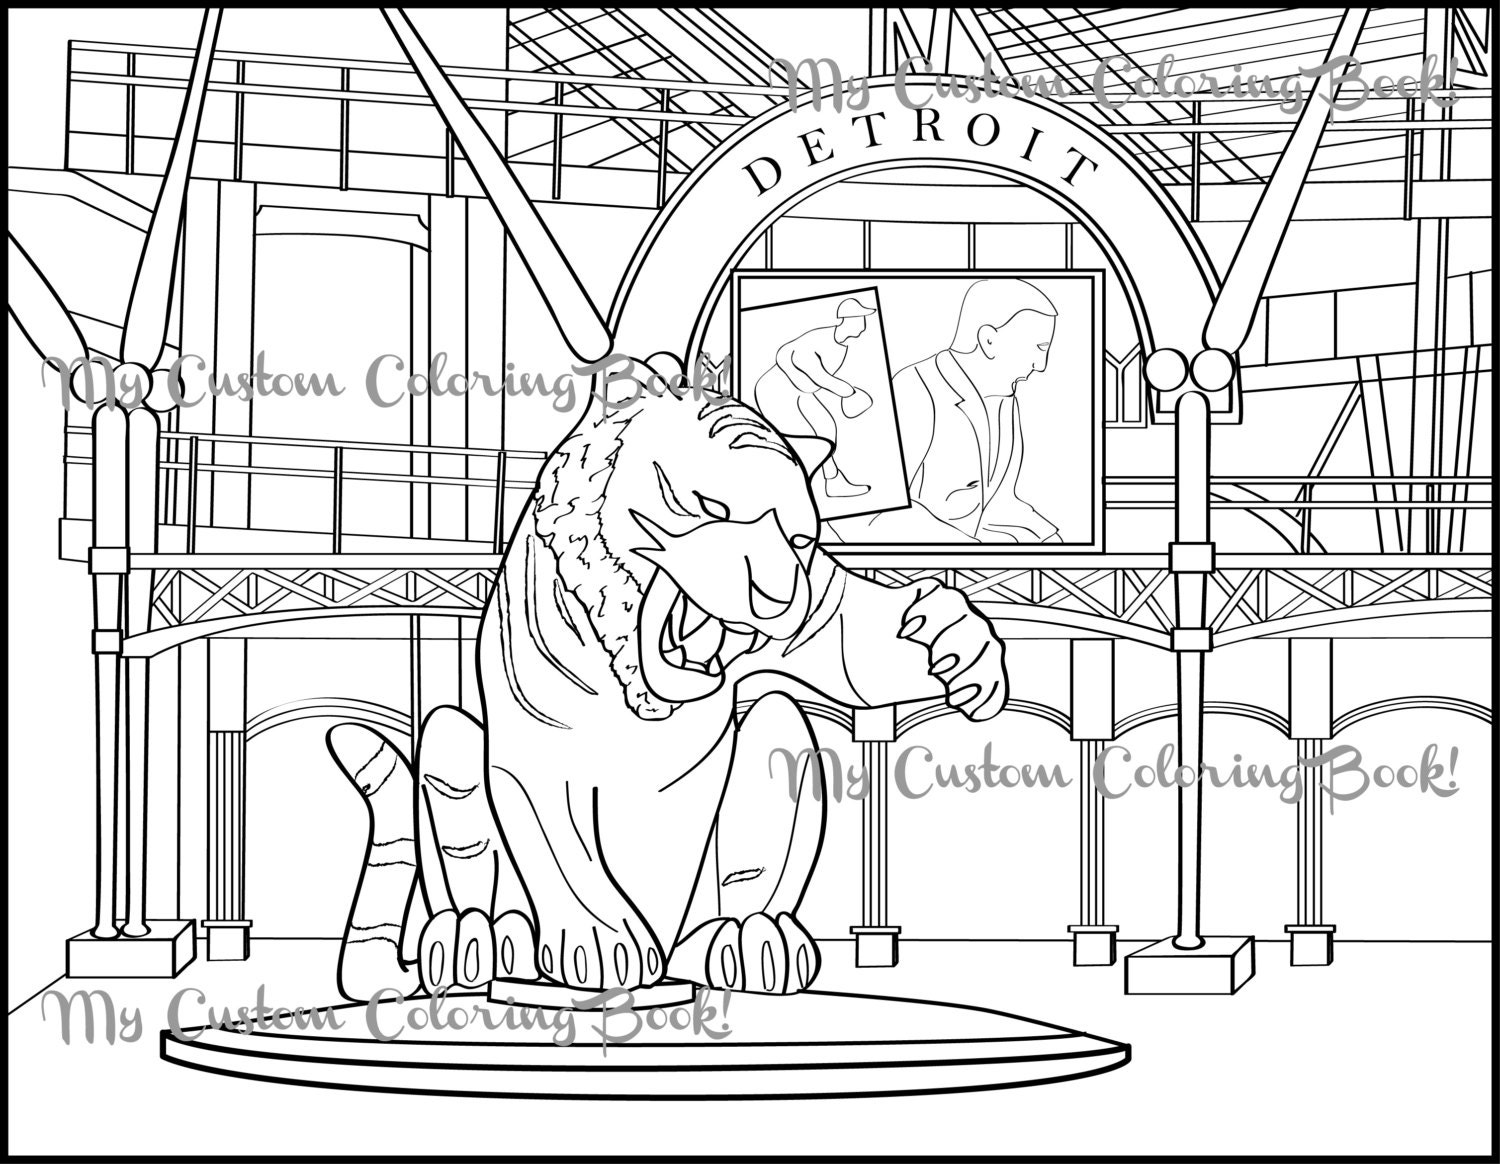 detroit tiger coloring pages - photo#7